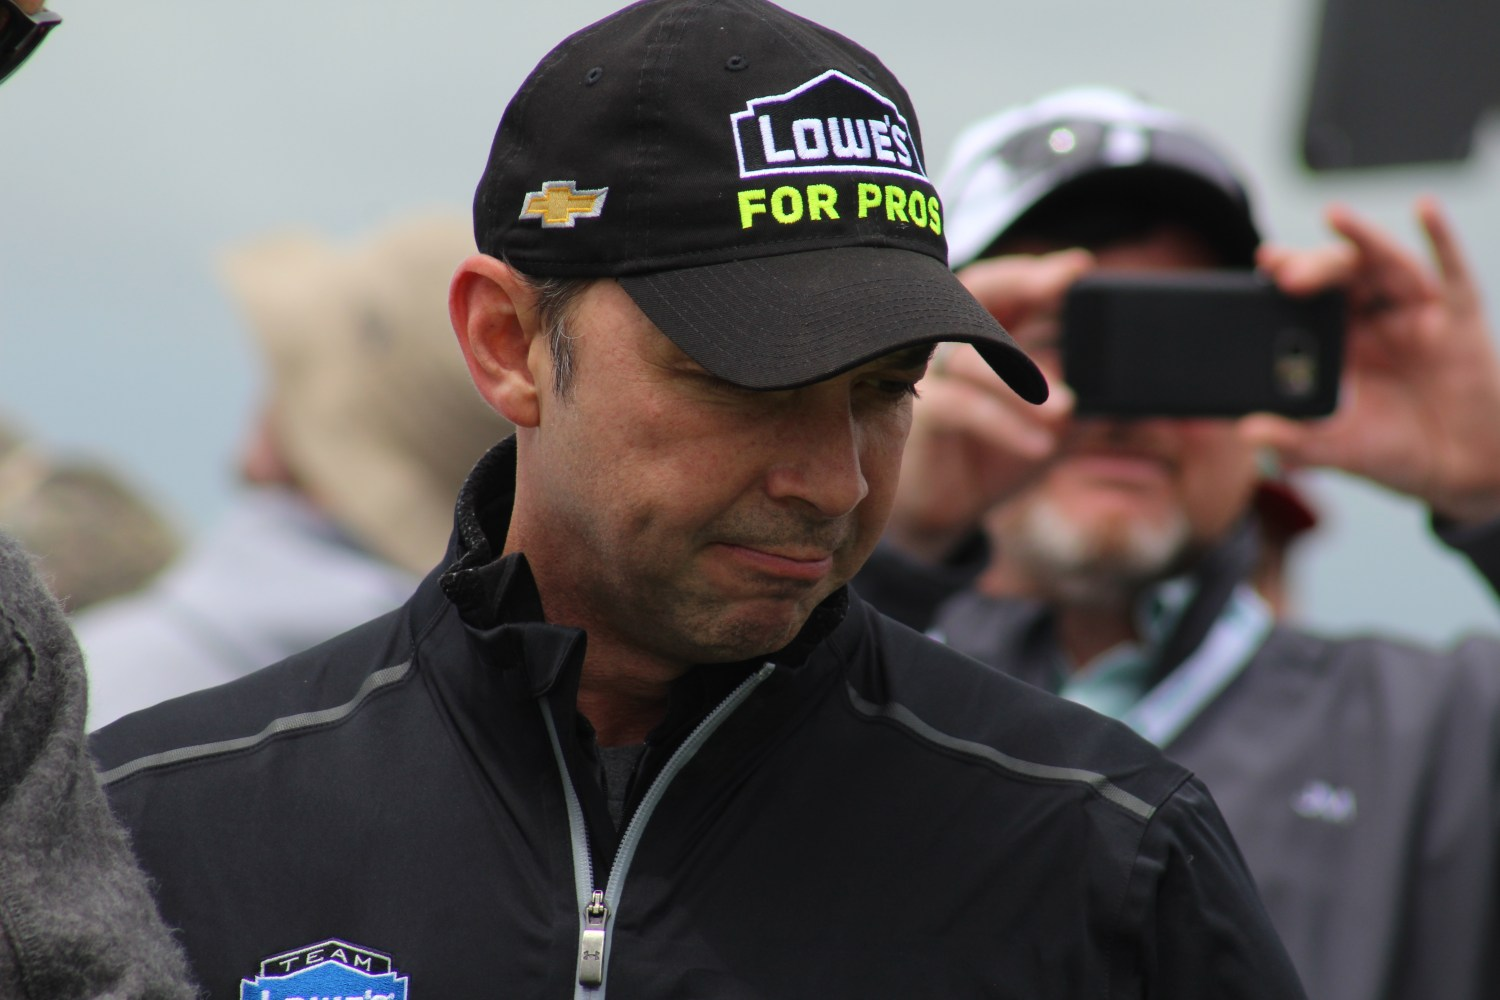 Chad Knaus surveys the No. 48 Chevrolet ahead of the 2018 Pocono 400. (Tyler Head | The Racing Experts)